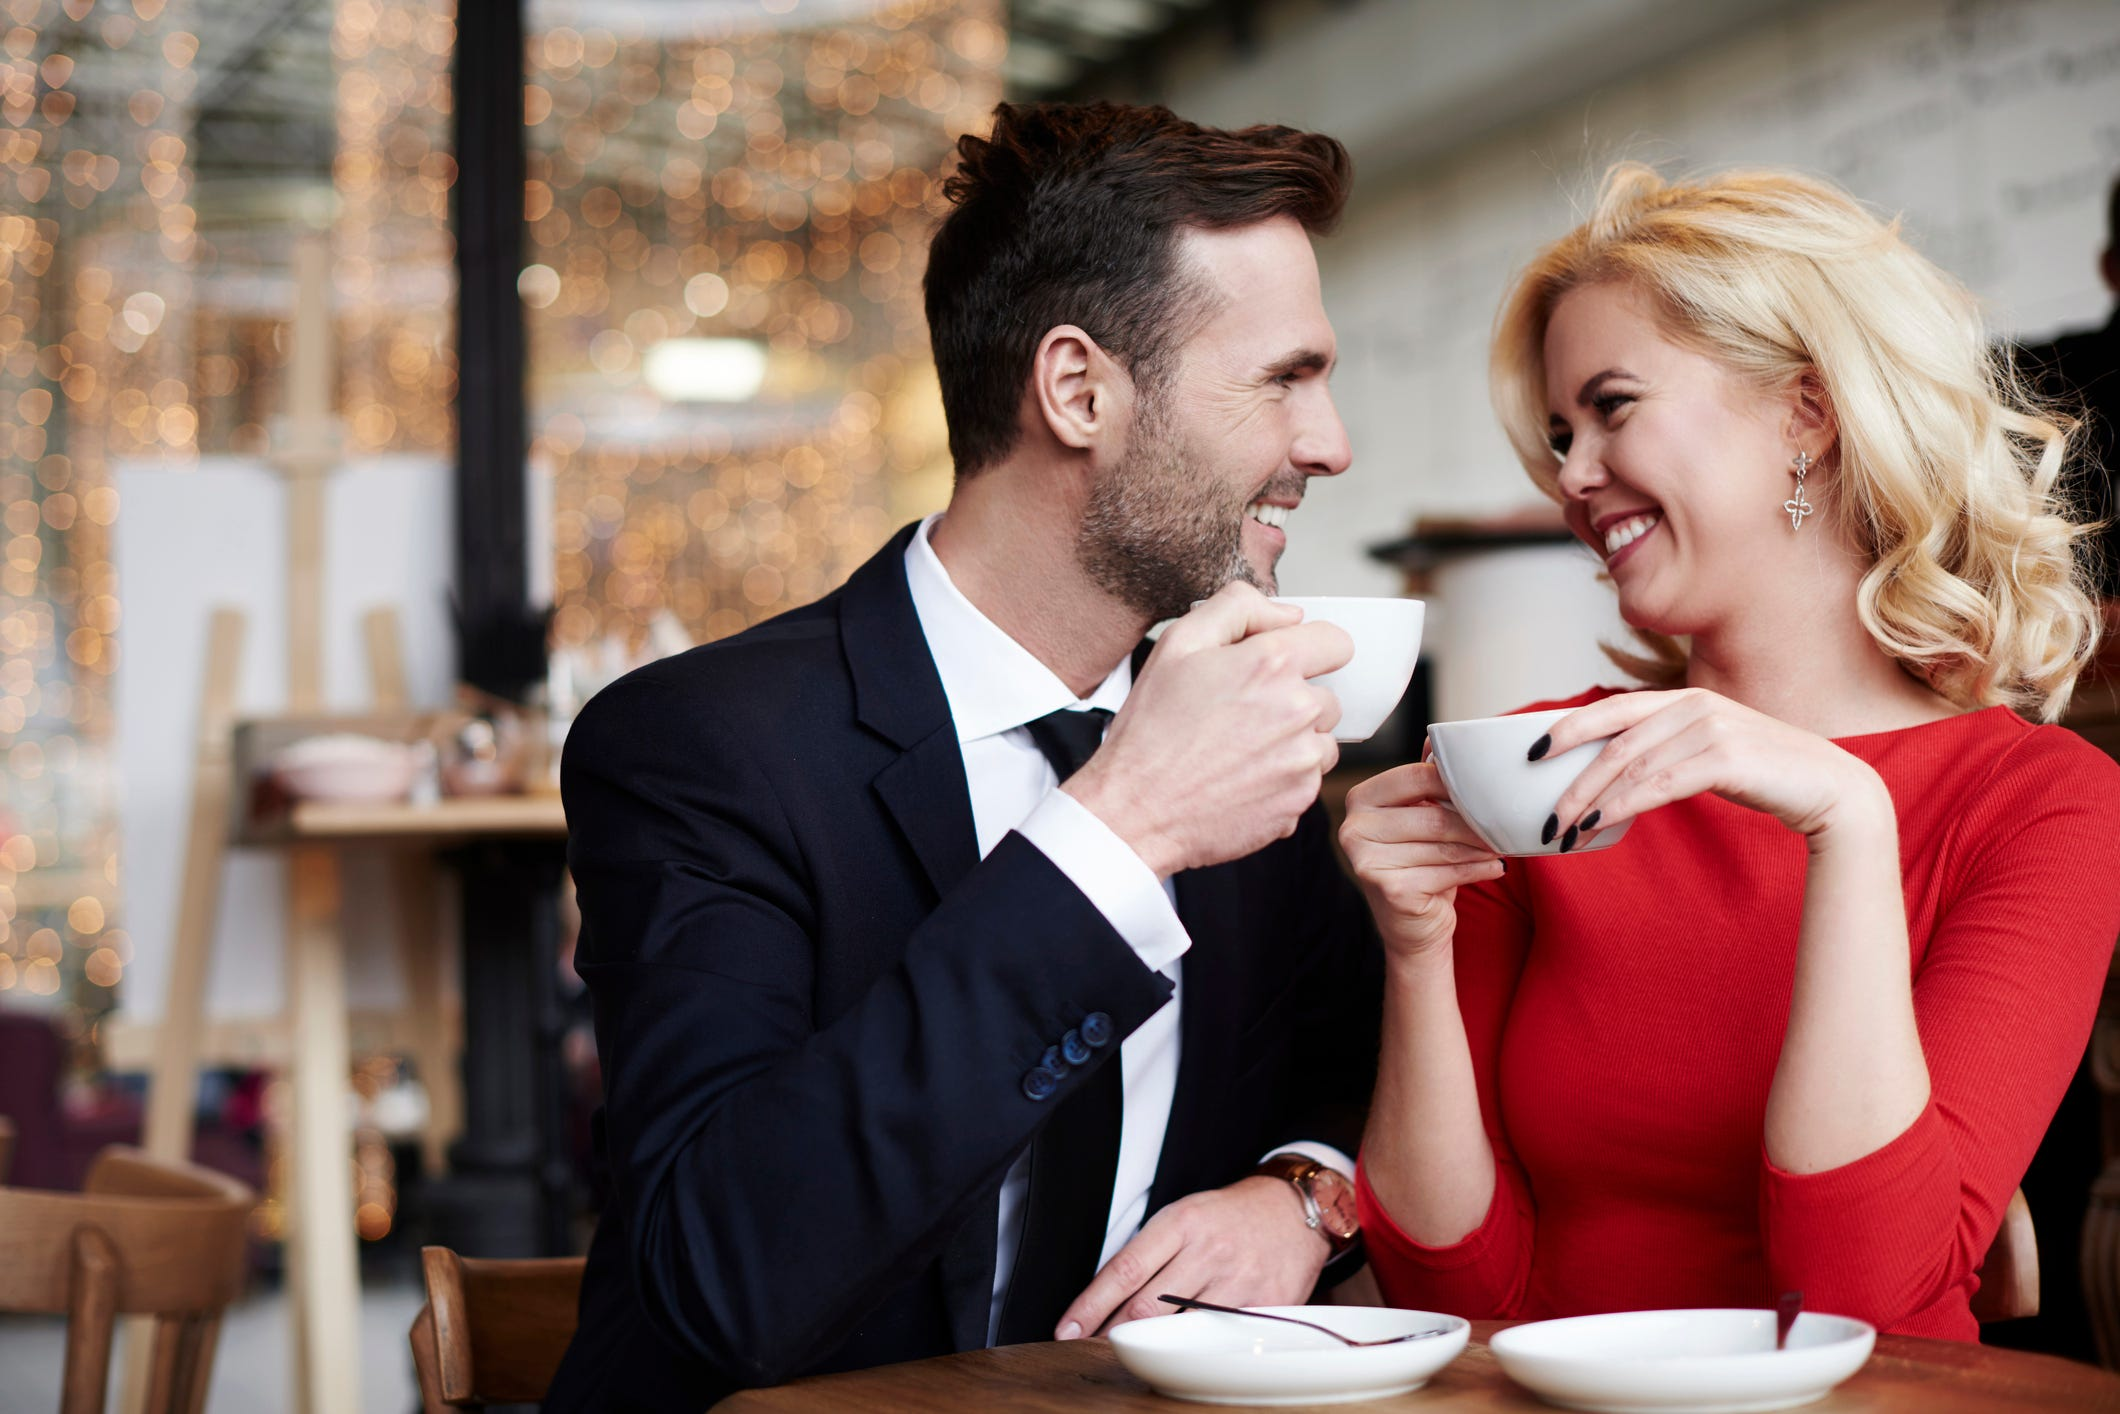 Dating donts with a new man